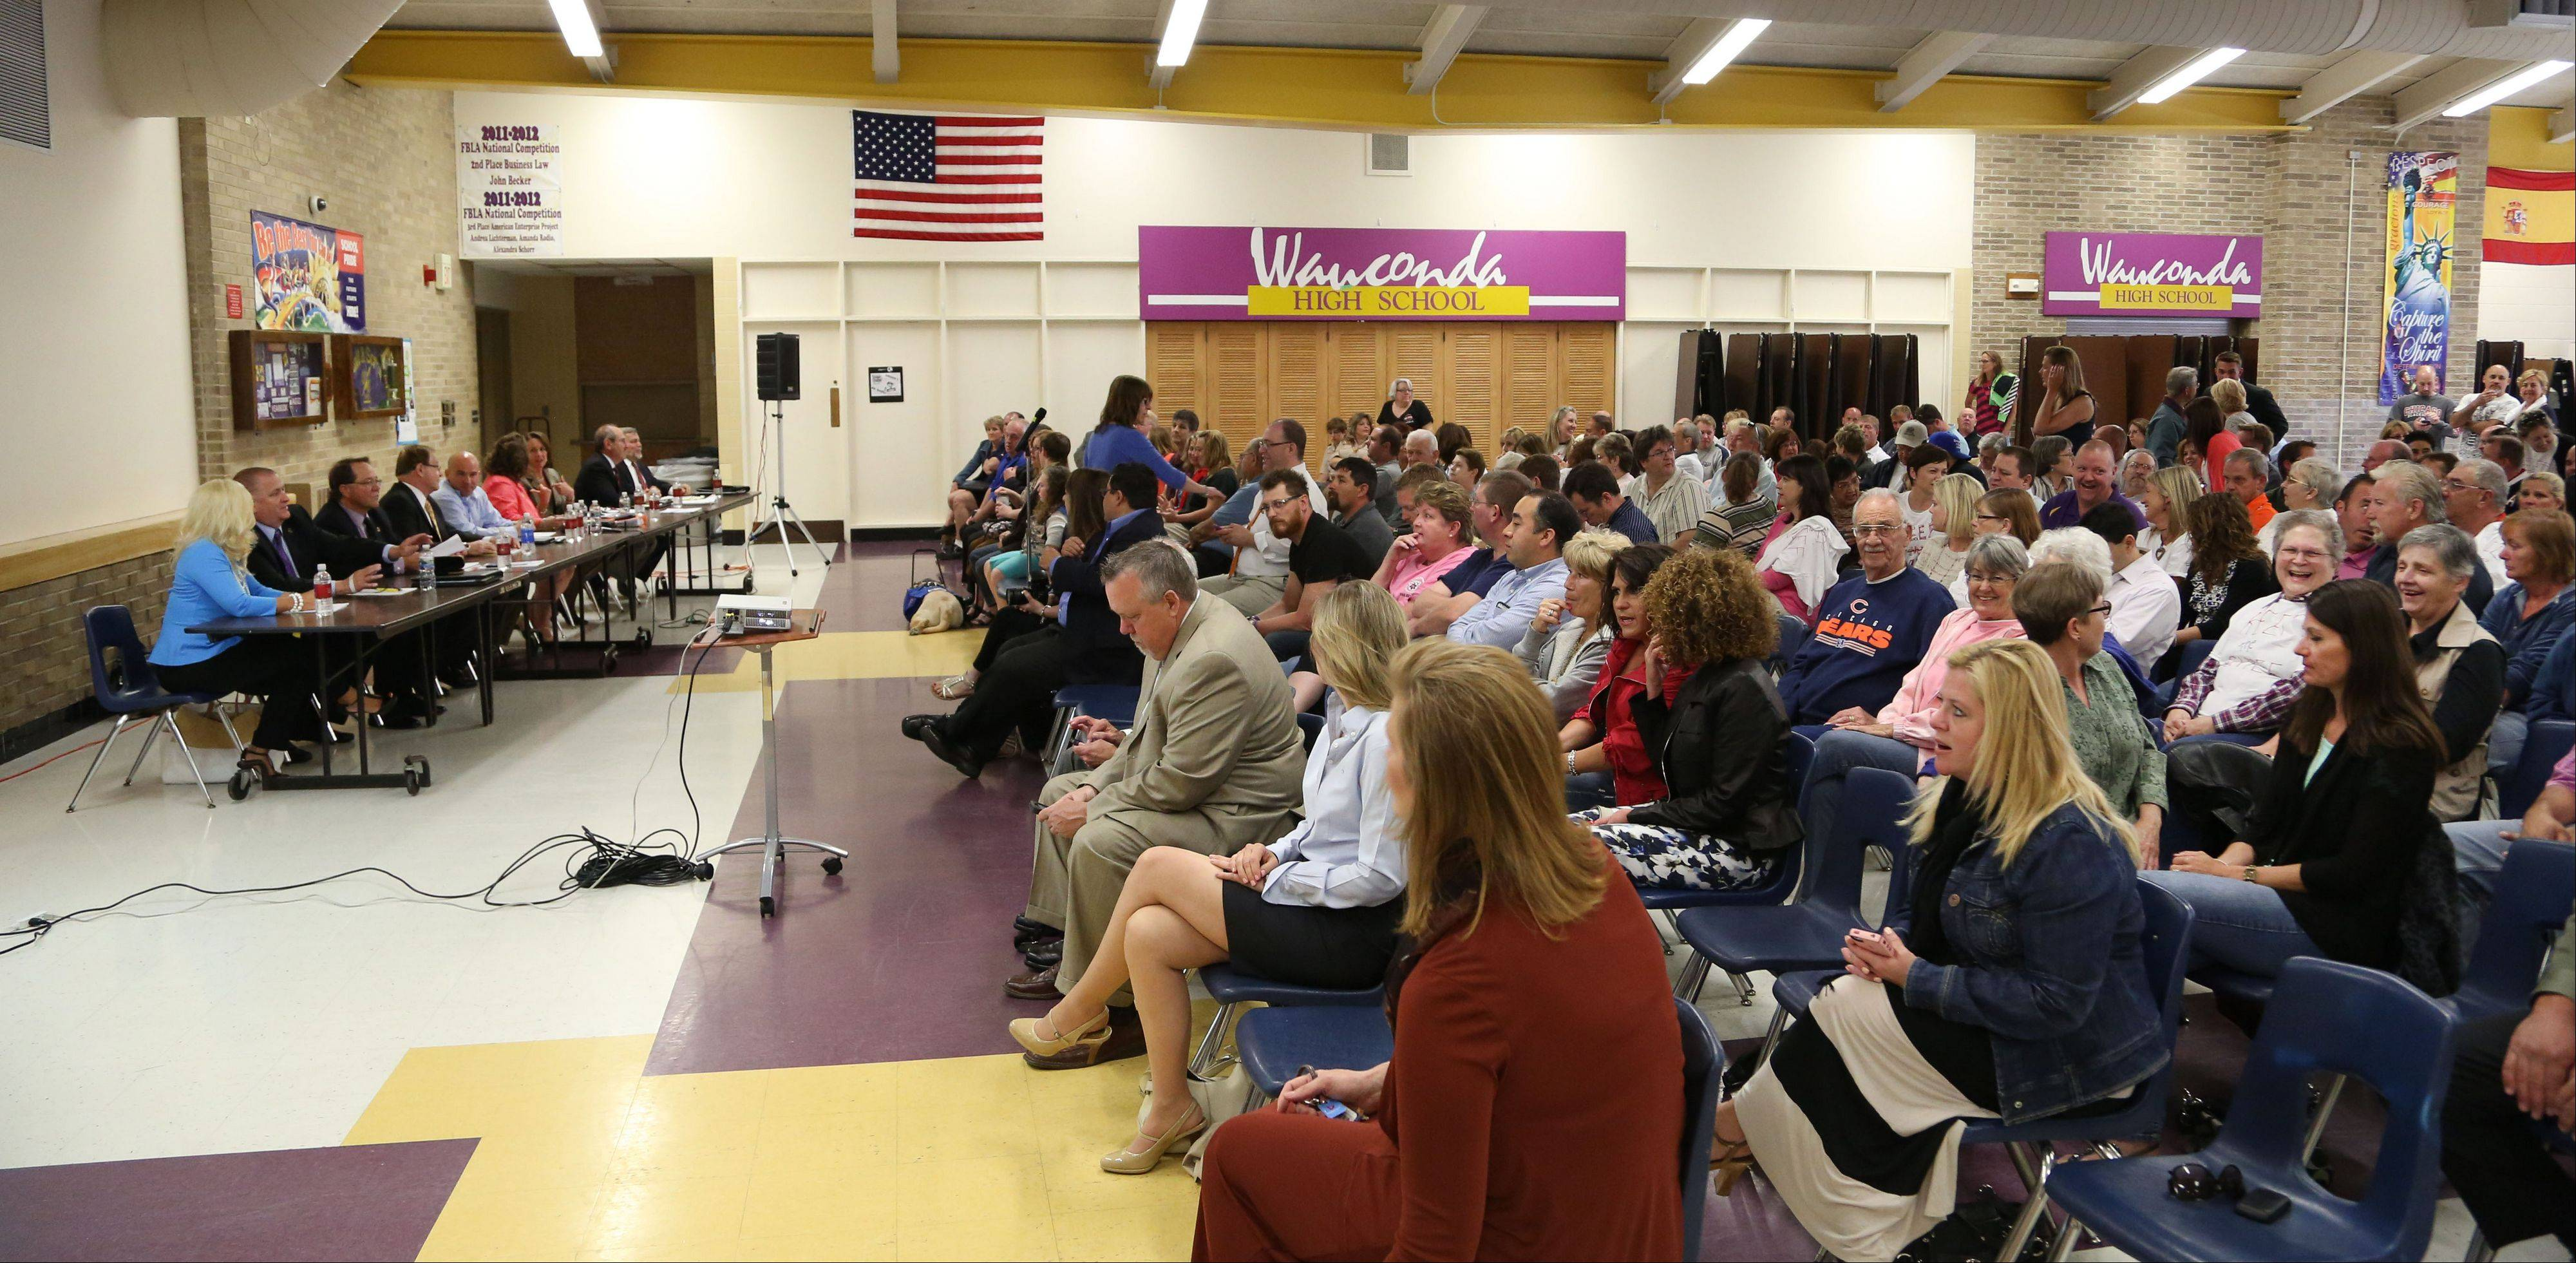 More than 200 people showed up to the village board meeting at Wauconda High School to discuss the removal of Wauconda Police Chief Doug Larsson Tuesday night.